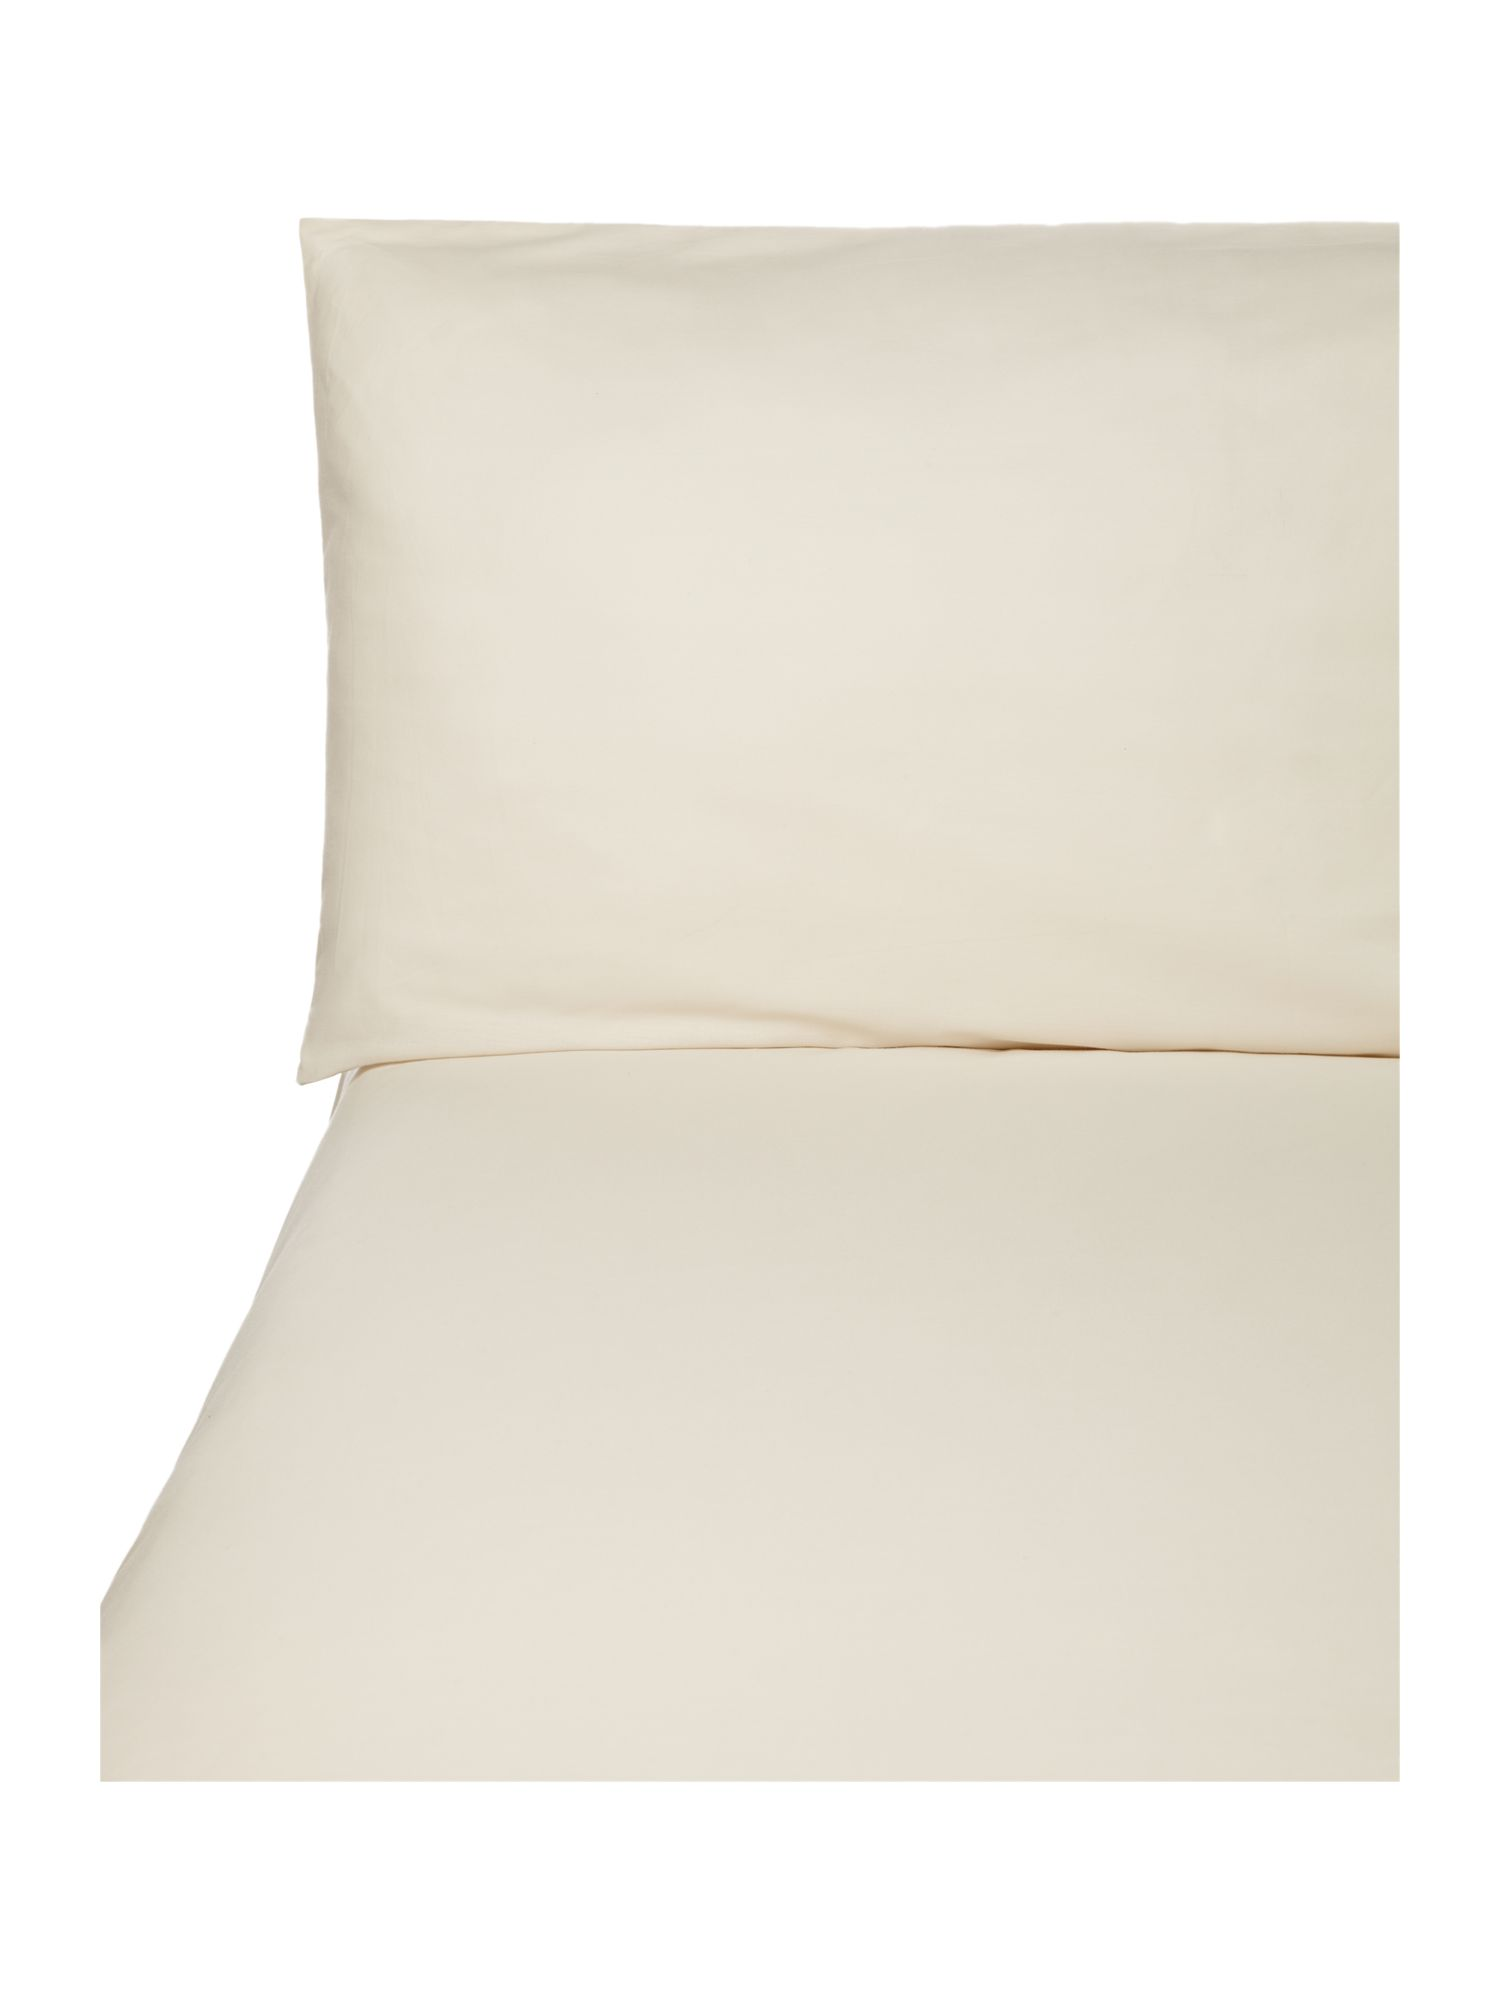 100% cotton percale bed linen in Ivory